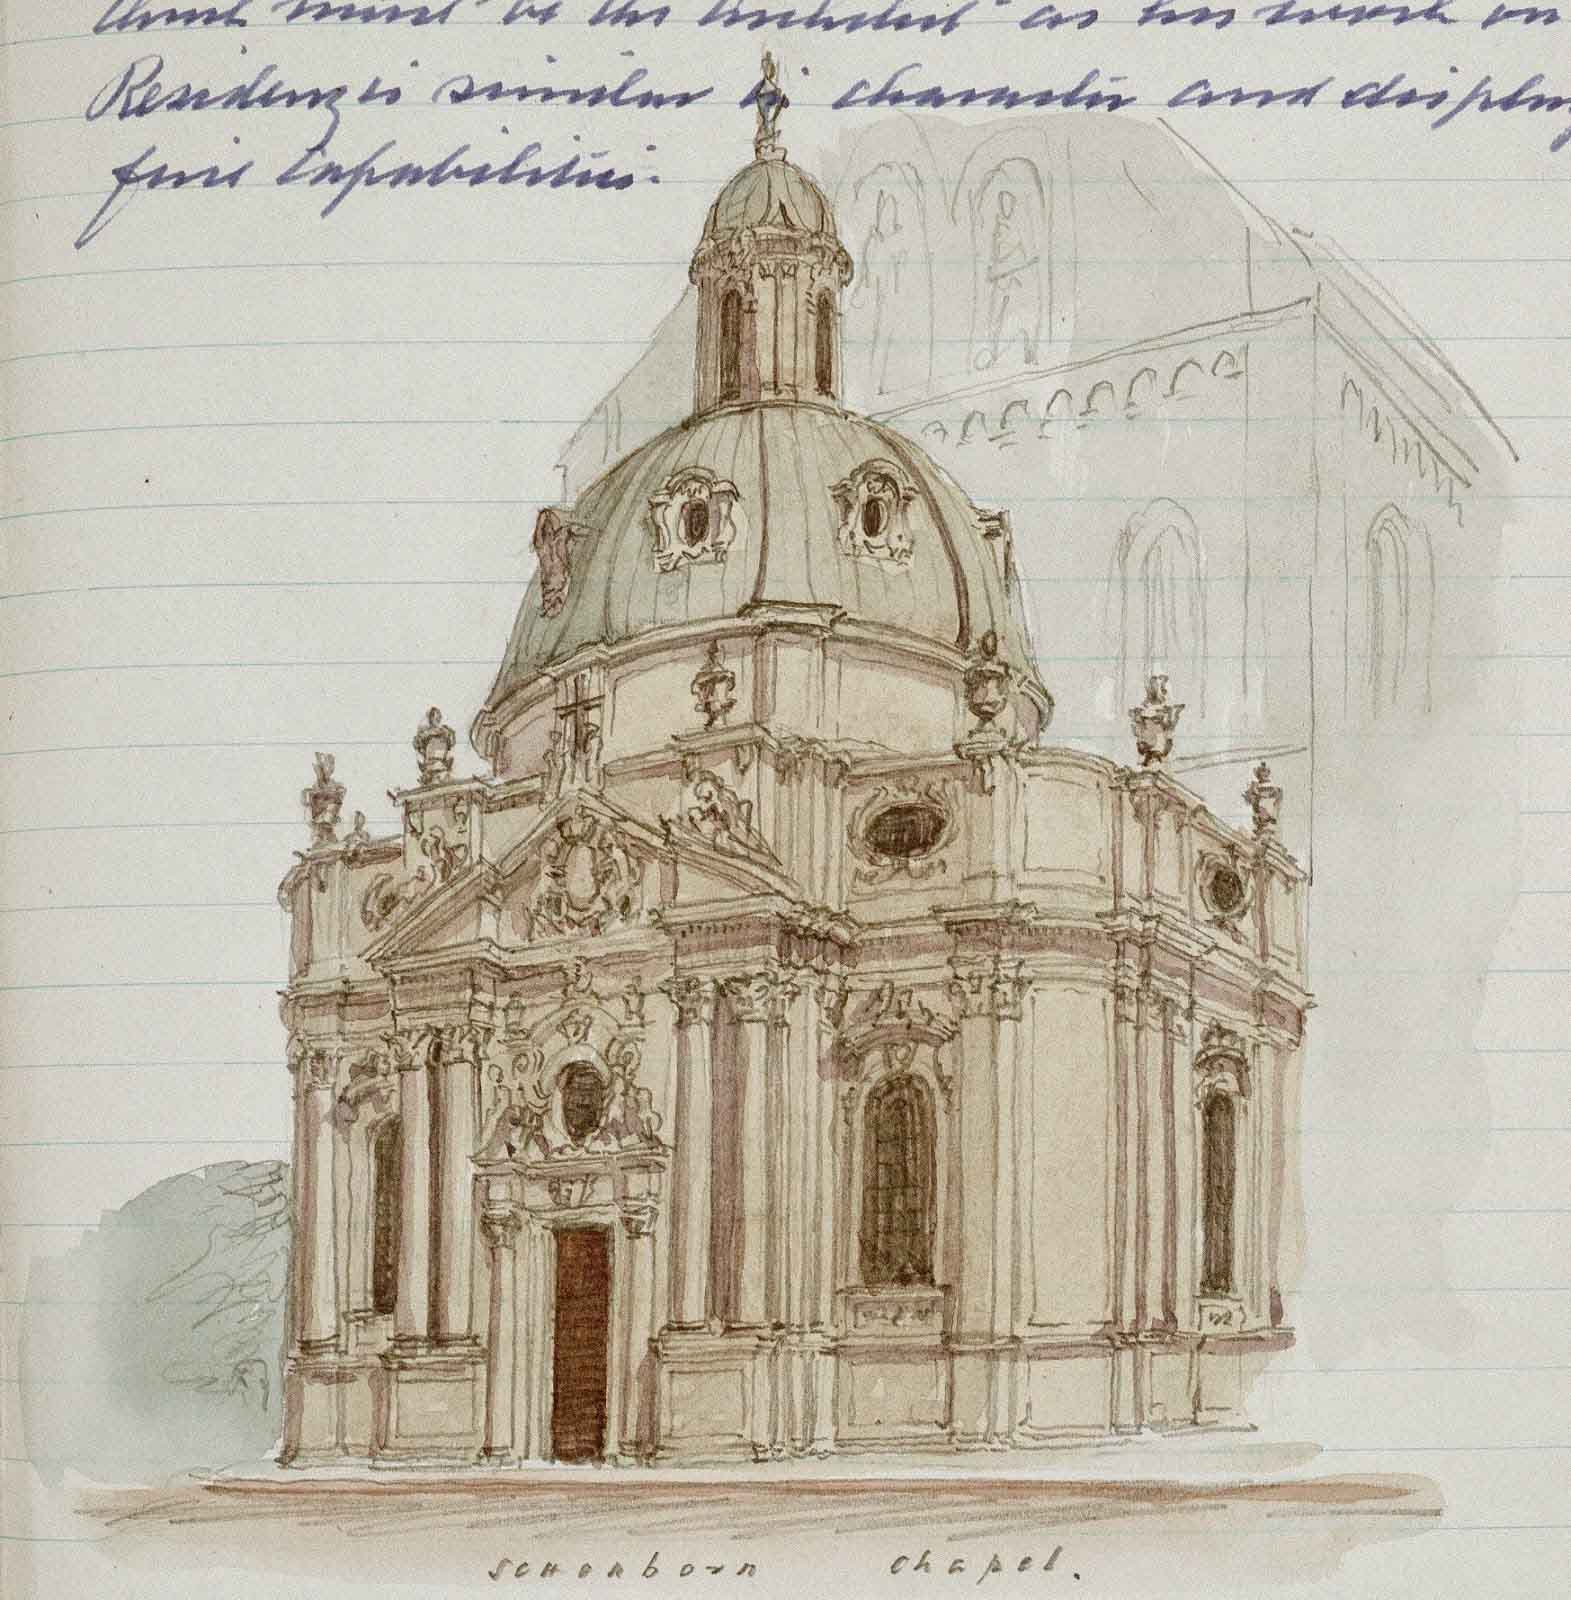 Architectural wonders: Johnson's illustration of Schonborn Chapel from his Grand Tour diary (U DFJR/1/1)